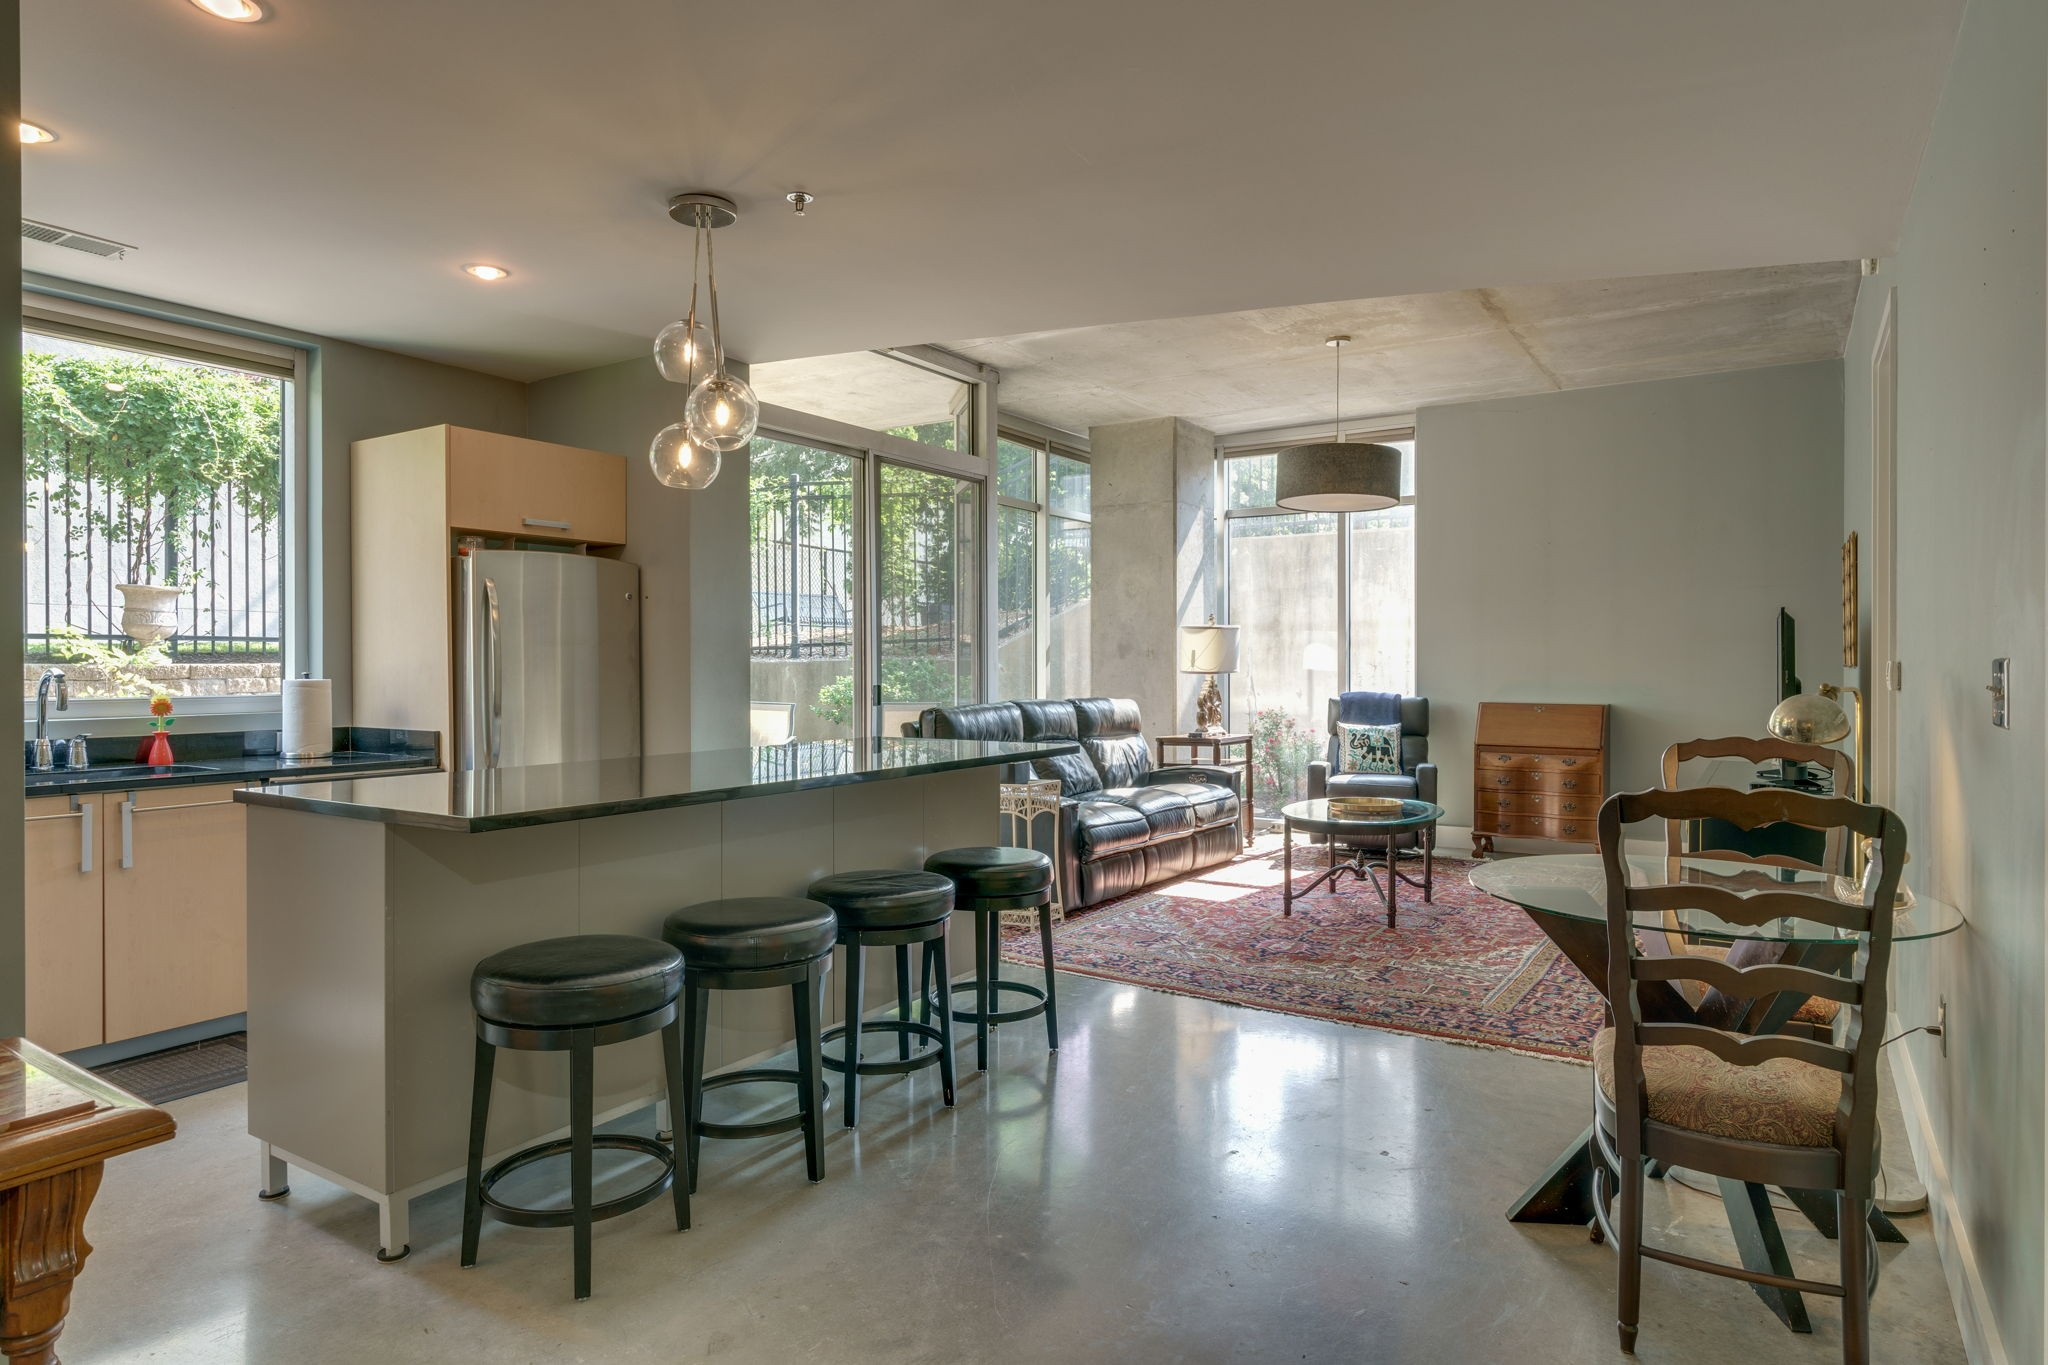 Located in the Heart of the Gulch, This Unique End Unit has 2 Bedrooms/ 2 Baths Plus Den with an Exquisite Patio to Enjoy Outdoor Living w Ample Space to Create a Beautiful Garden. Unit has Concrete Floors, Tile Backsplash, SS Appliances, 2 Prime Parking Spots (360,362) and an Easy Walk to the Unit and Close to the Elevator. Enjoy the Amenities the Icon has to offer: 24 Hr Concierge, 2 Pools, Club Room, Fitness.